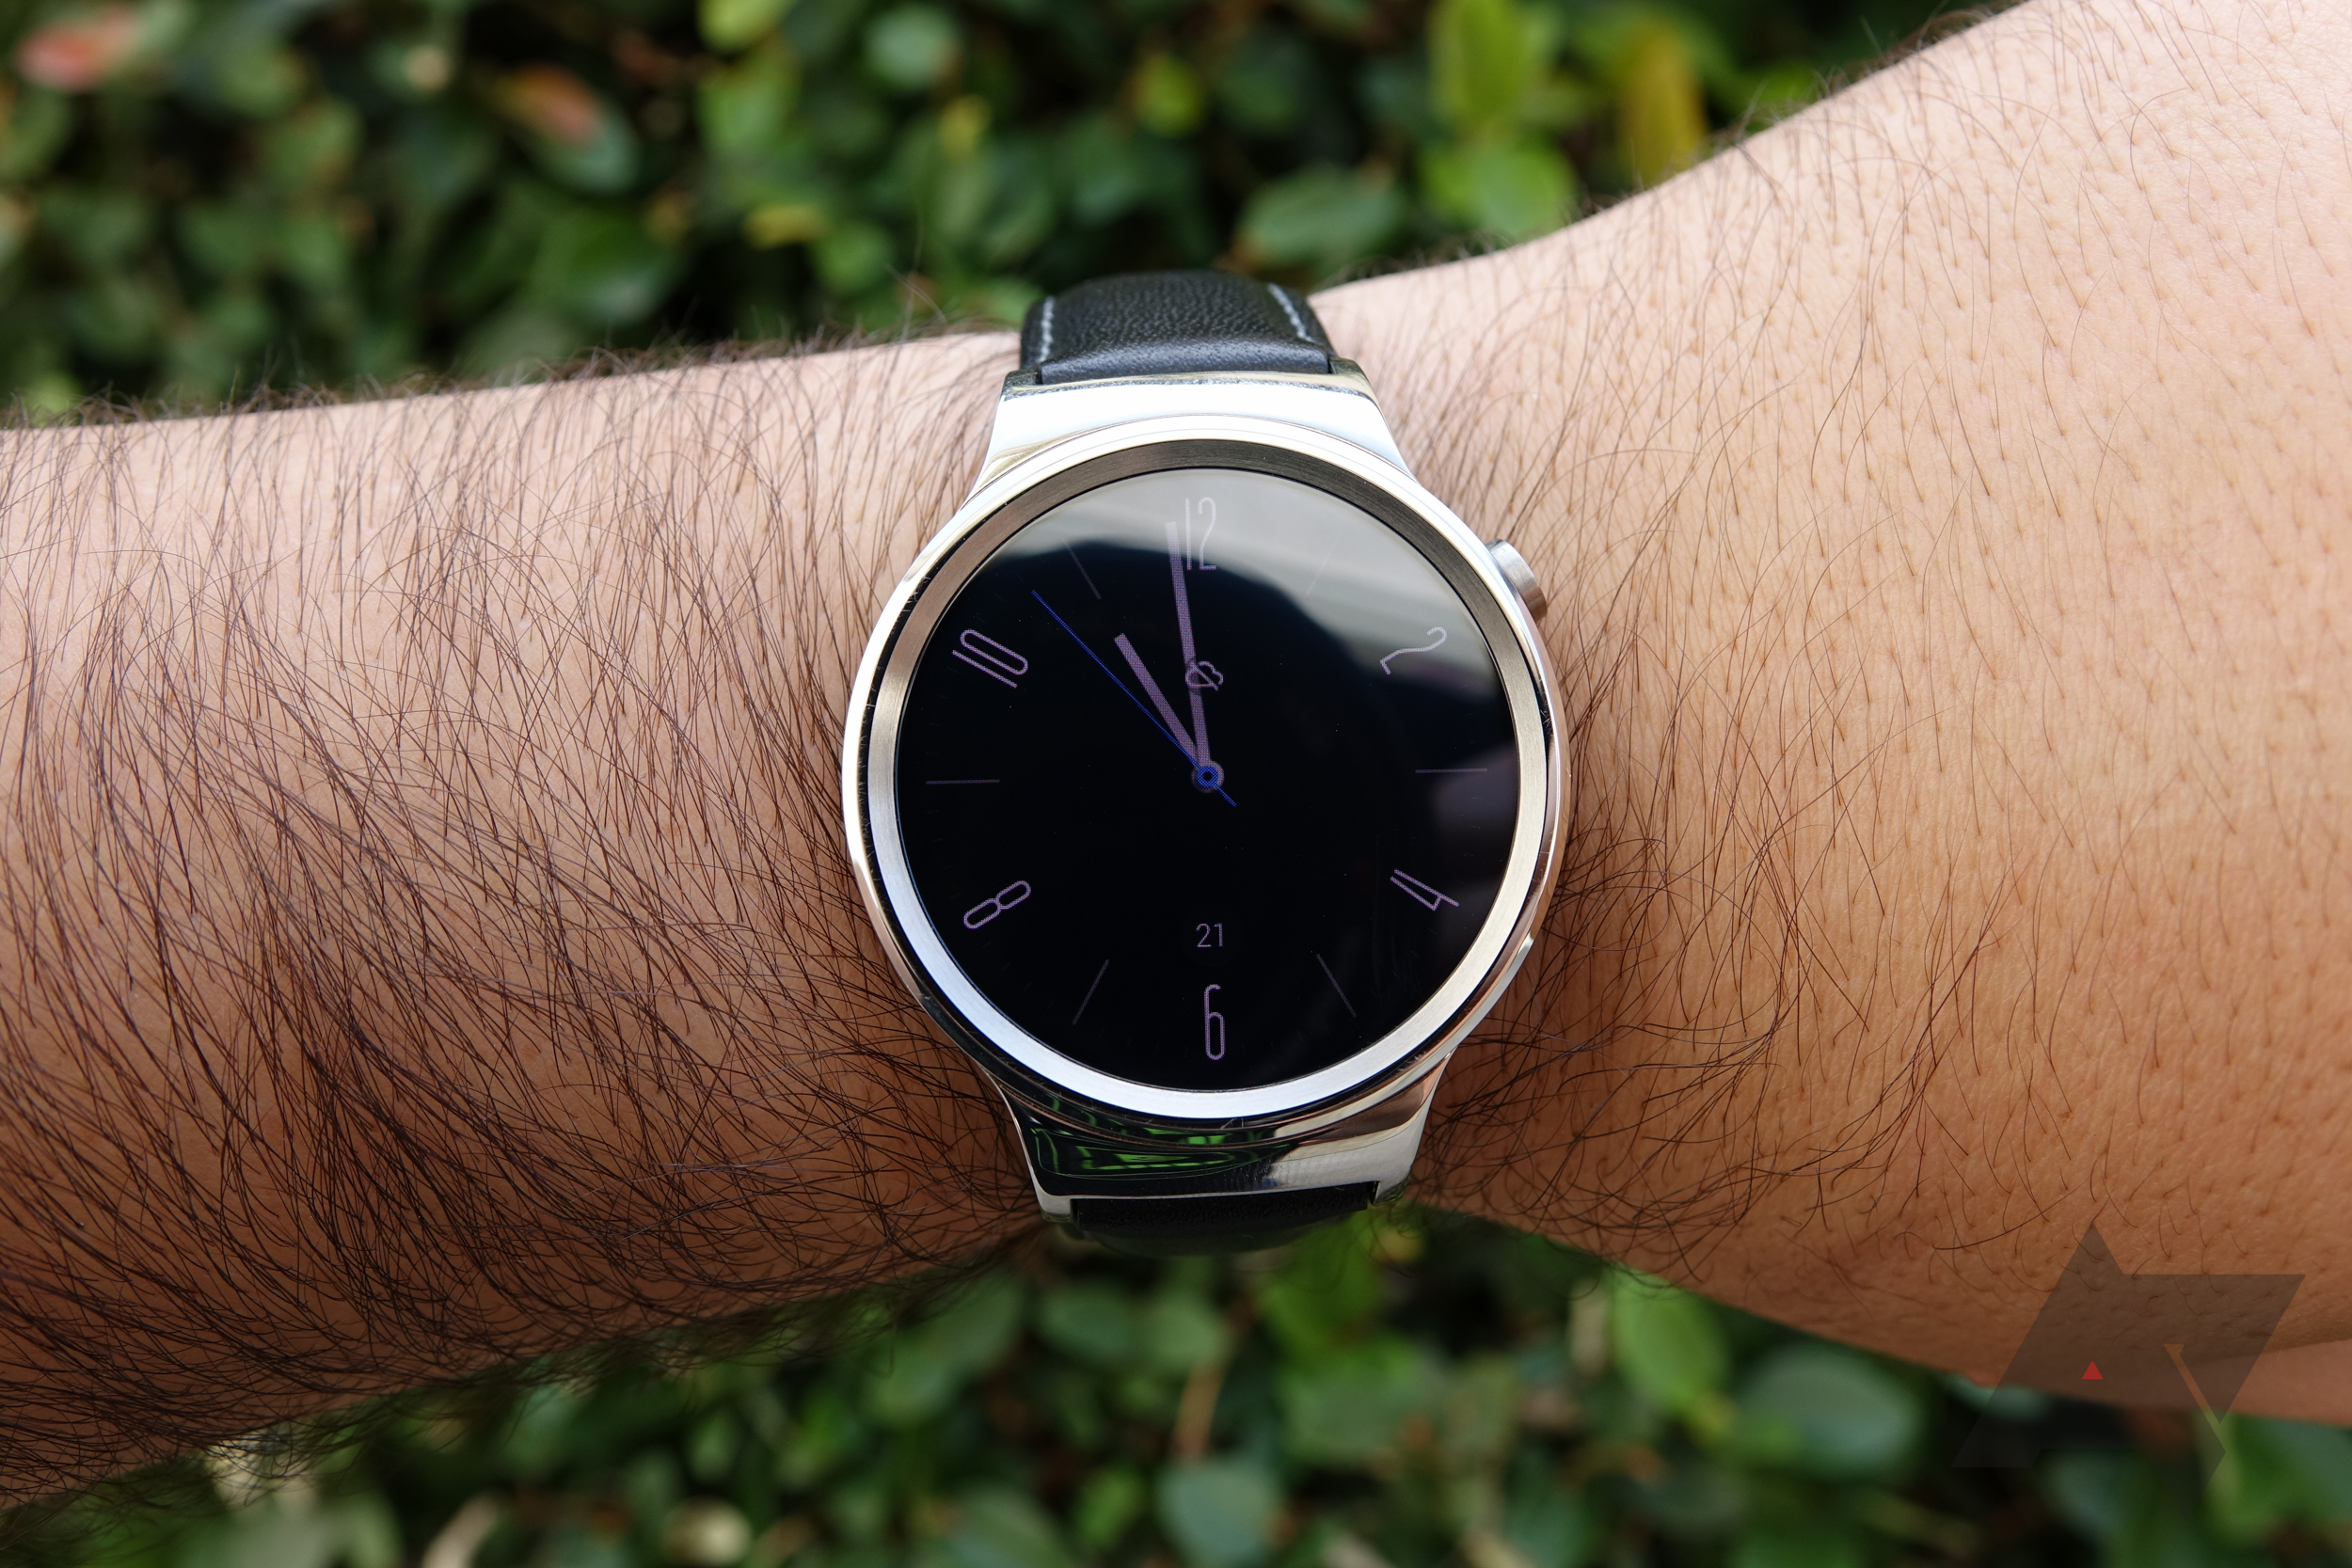 huawei smartwatch on wrist. the huawei watch is a nice smartwatch with screen, good battery life, and what i would call an above-average level of construction quality. on wrist